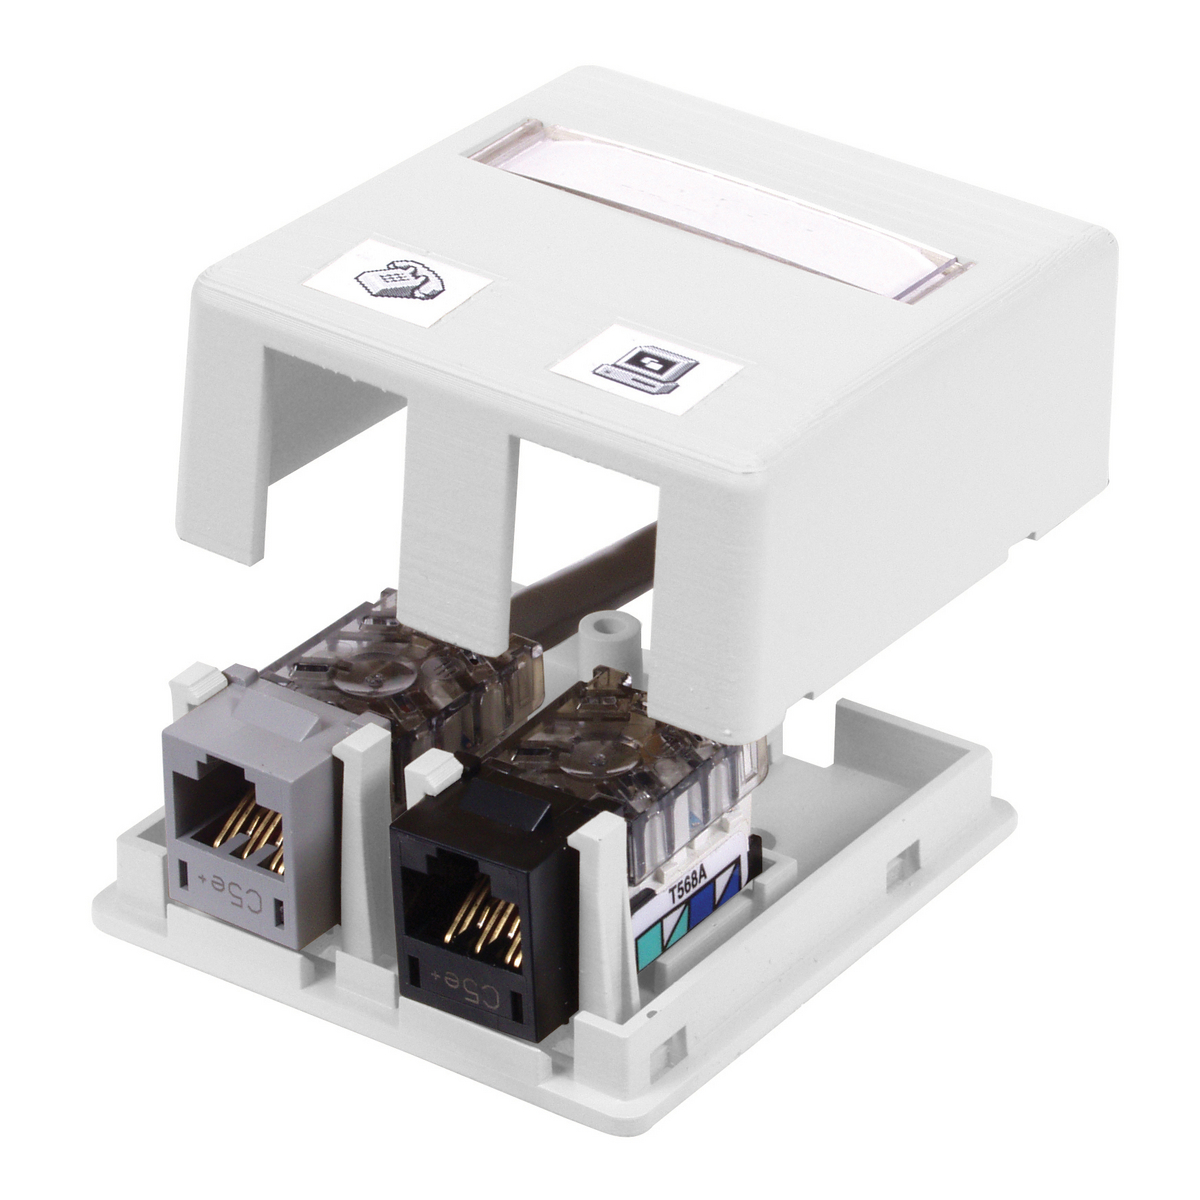 HUBPR ISB2W HOUSING, SURFACE MOUNT, 2 PORT, WH